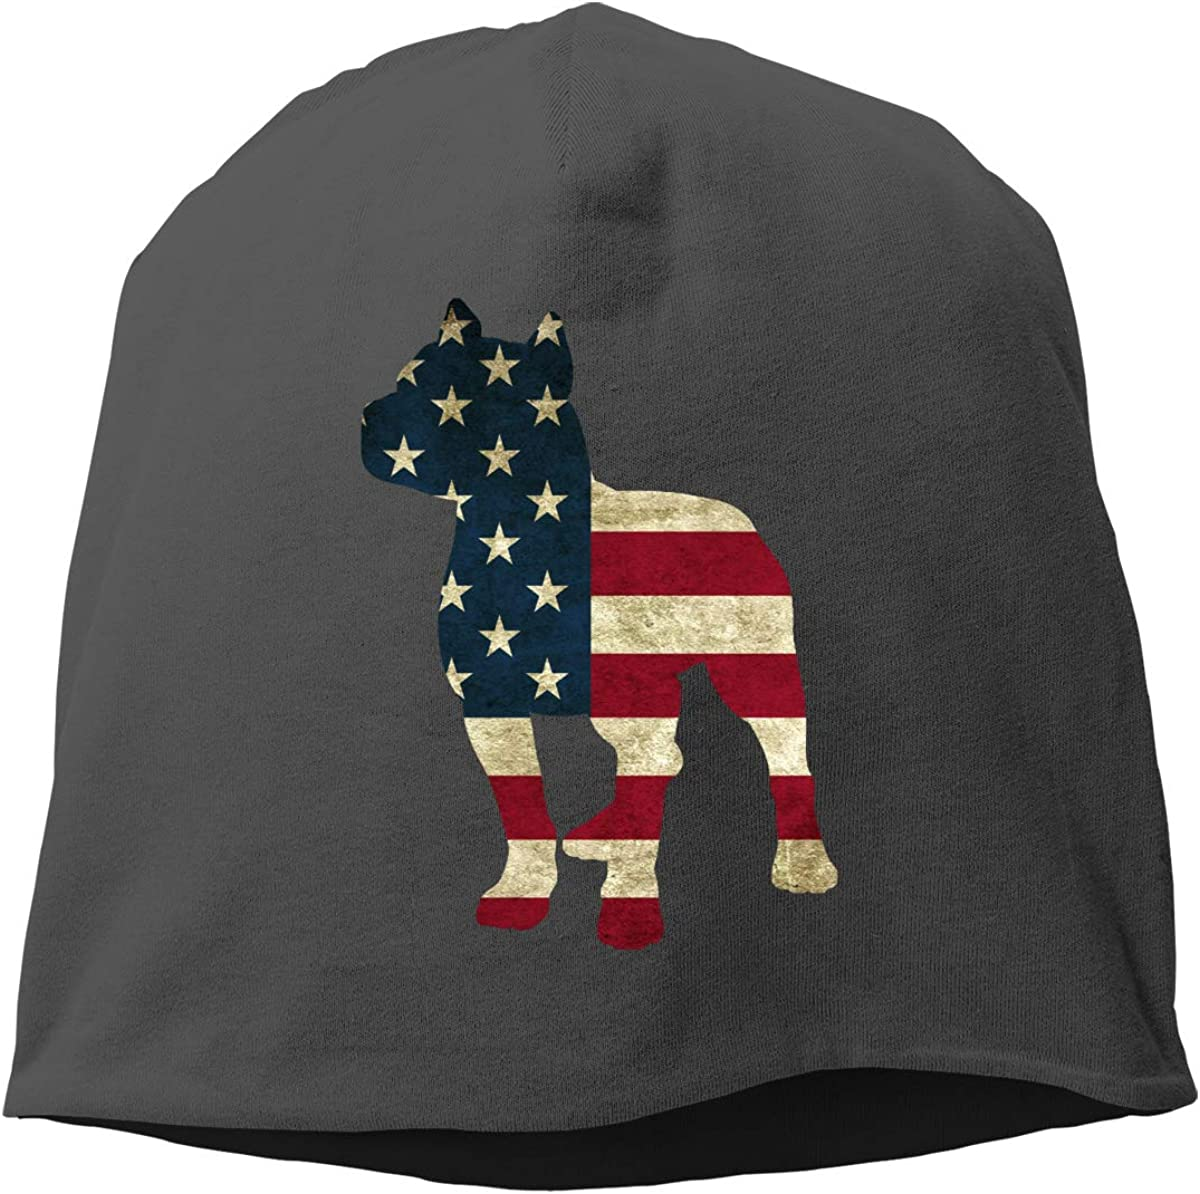 allgobee Slouchy Beanie Patriotic Pitbull Baggy Weekly update Un American Japan's largest assortment Flag